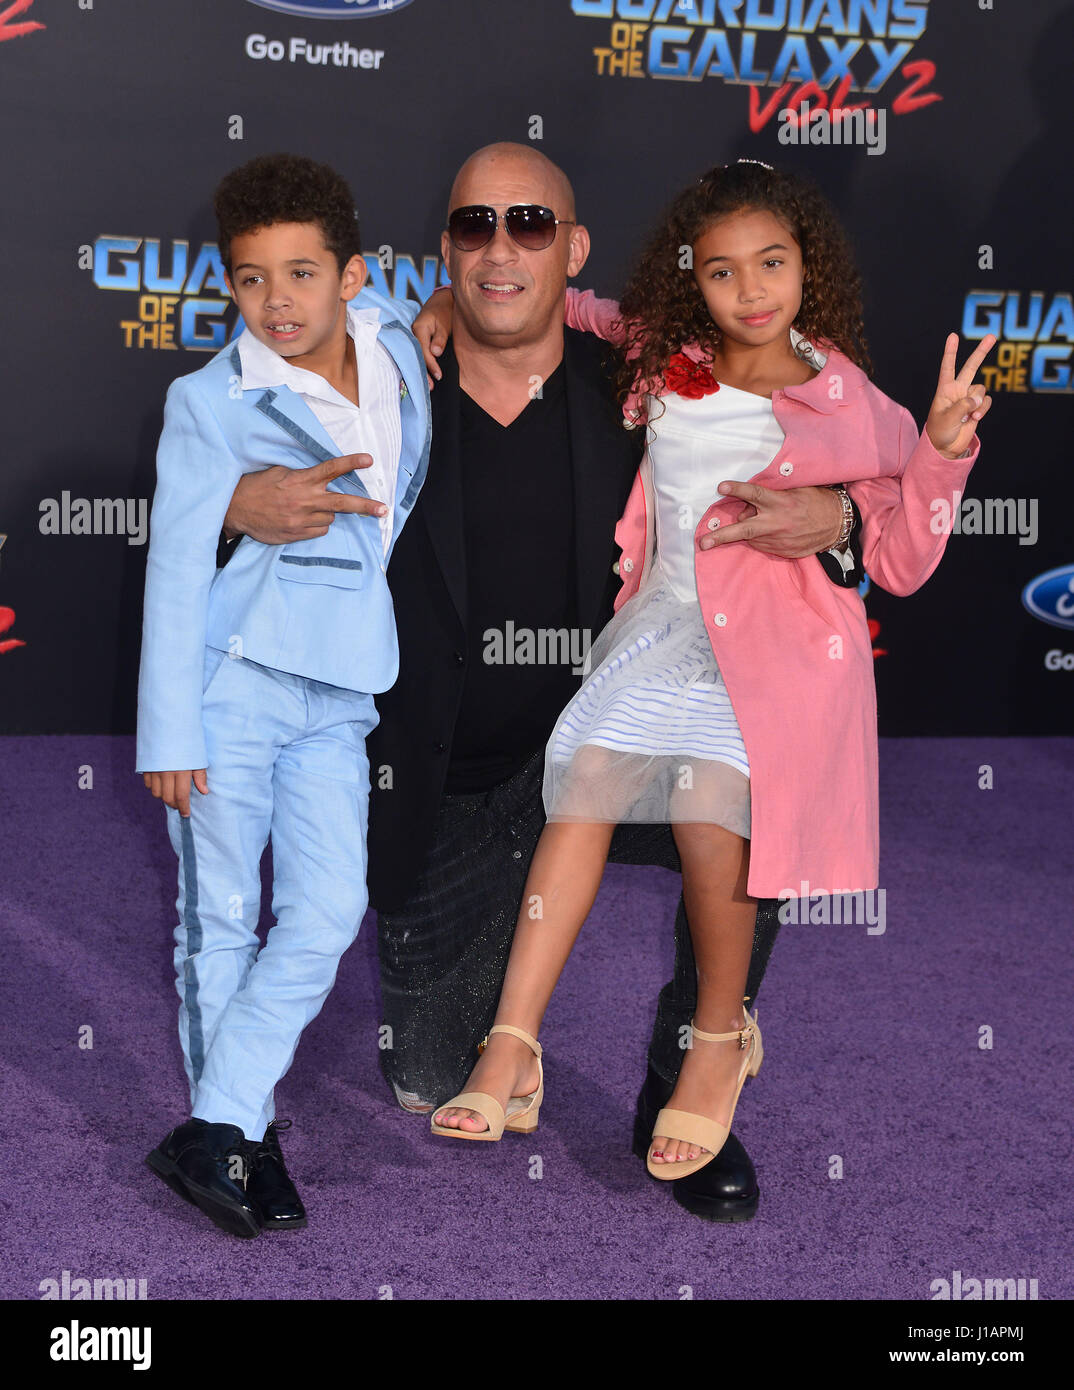 https://c8.alamy.com/comp/J1APMJ/los-angeles-usa-18th-apr-2017-vin-diesel-daughter-hania-riley-sinclair-J1APMJ.jpg Vin Diesel Daughter 2017